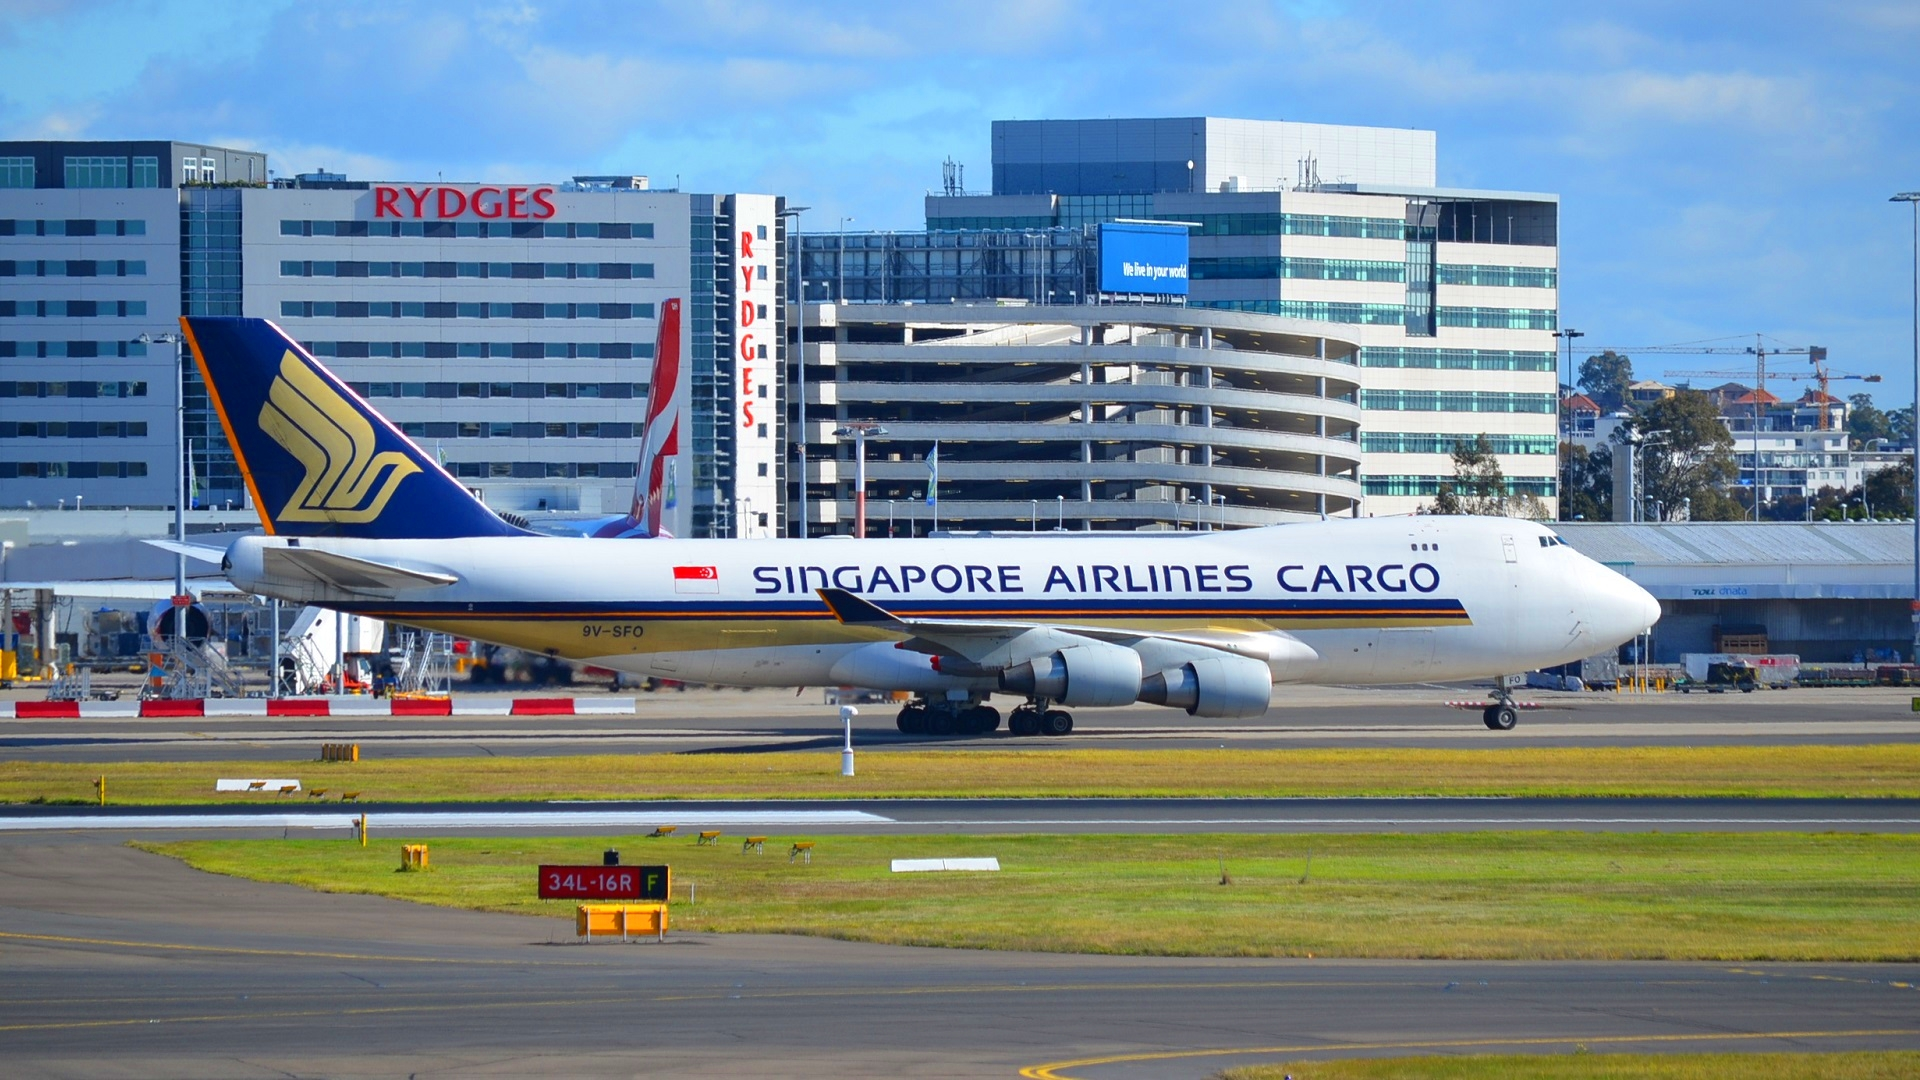 9V-SFO Boeing 747-412F/SCD Singapore Airlines Cargo At